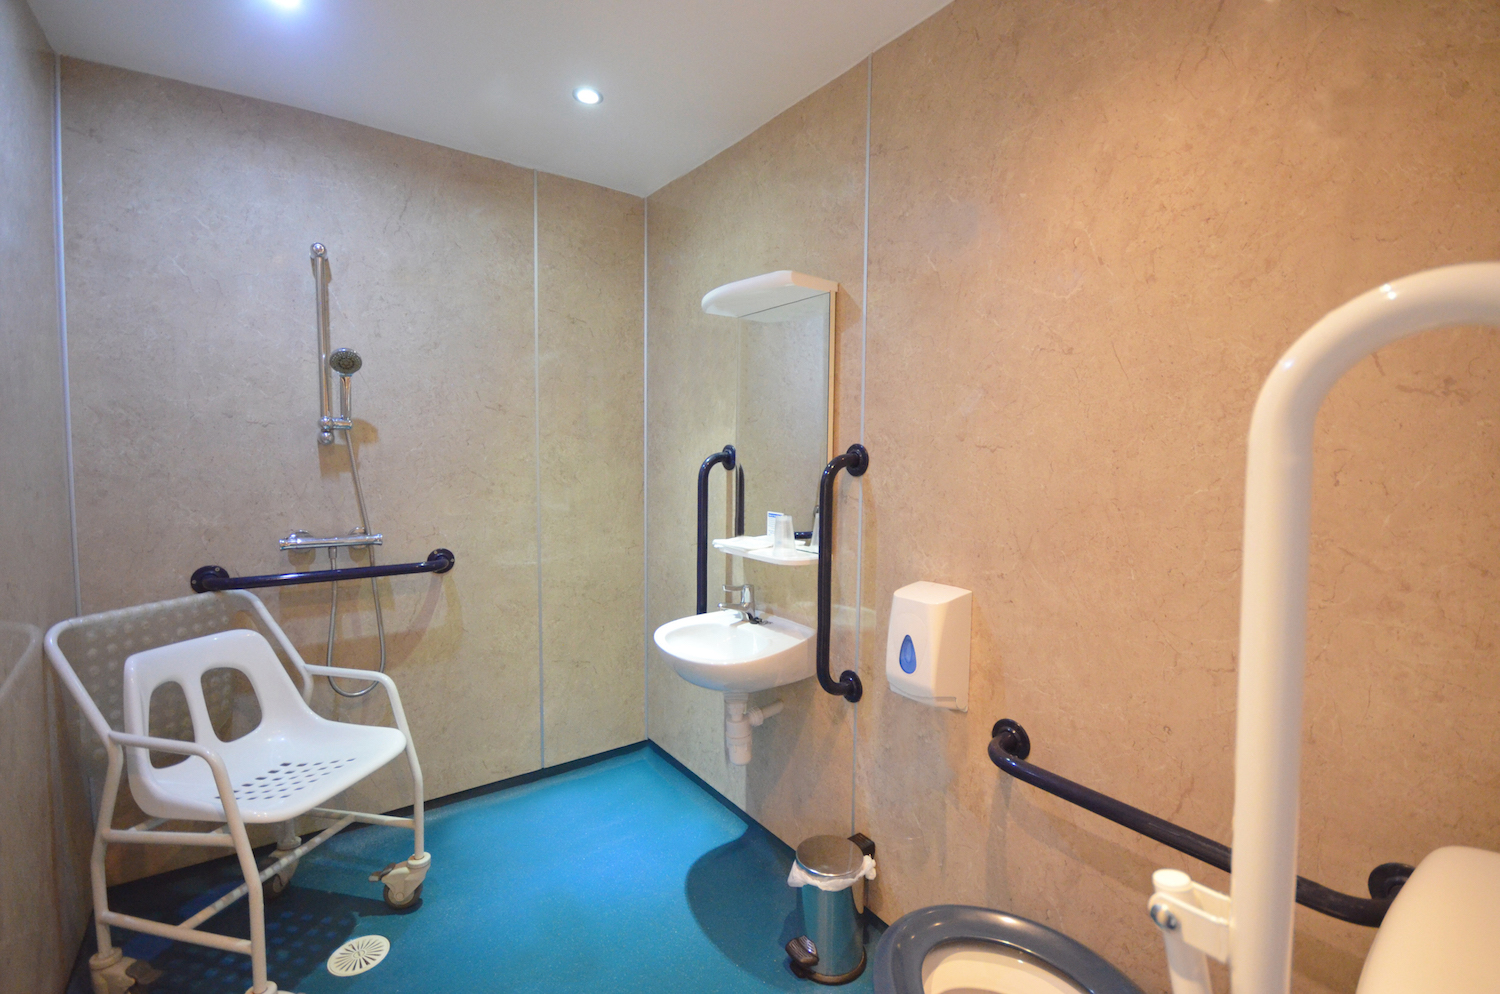 Bathroom with plenty of mobility equipment